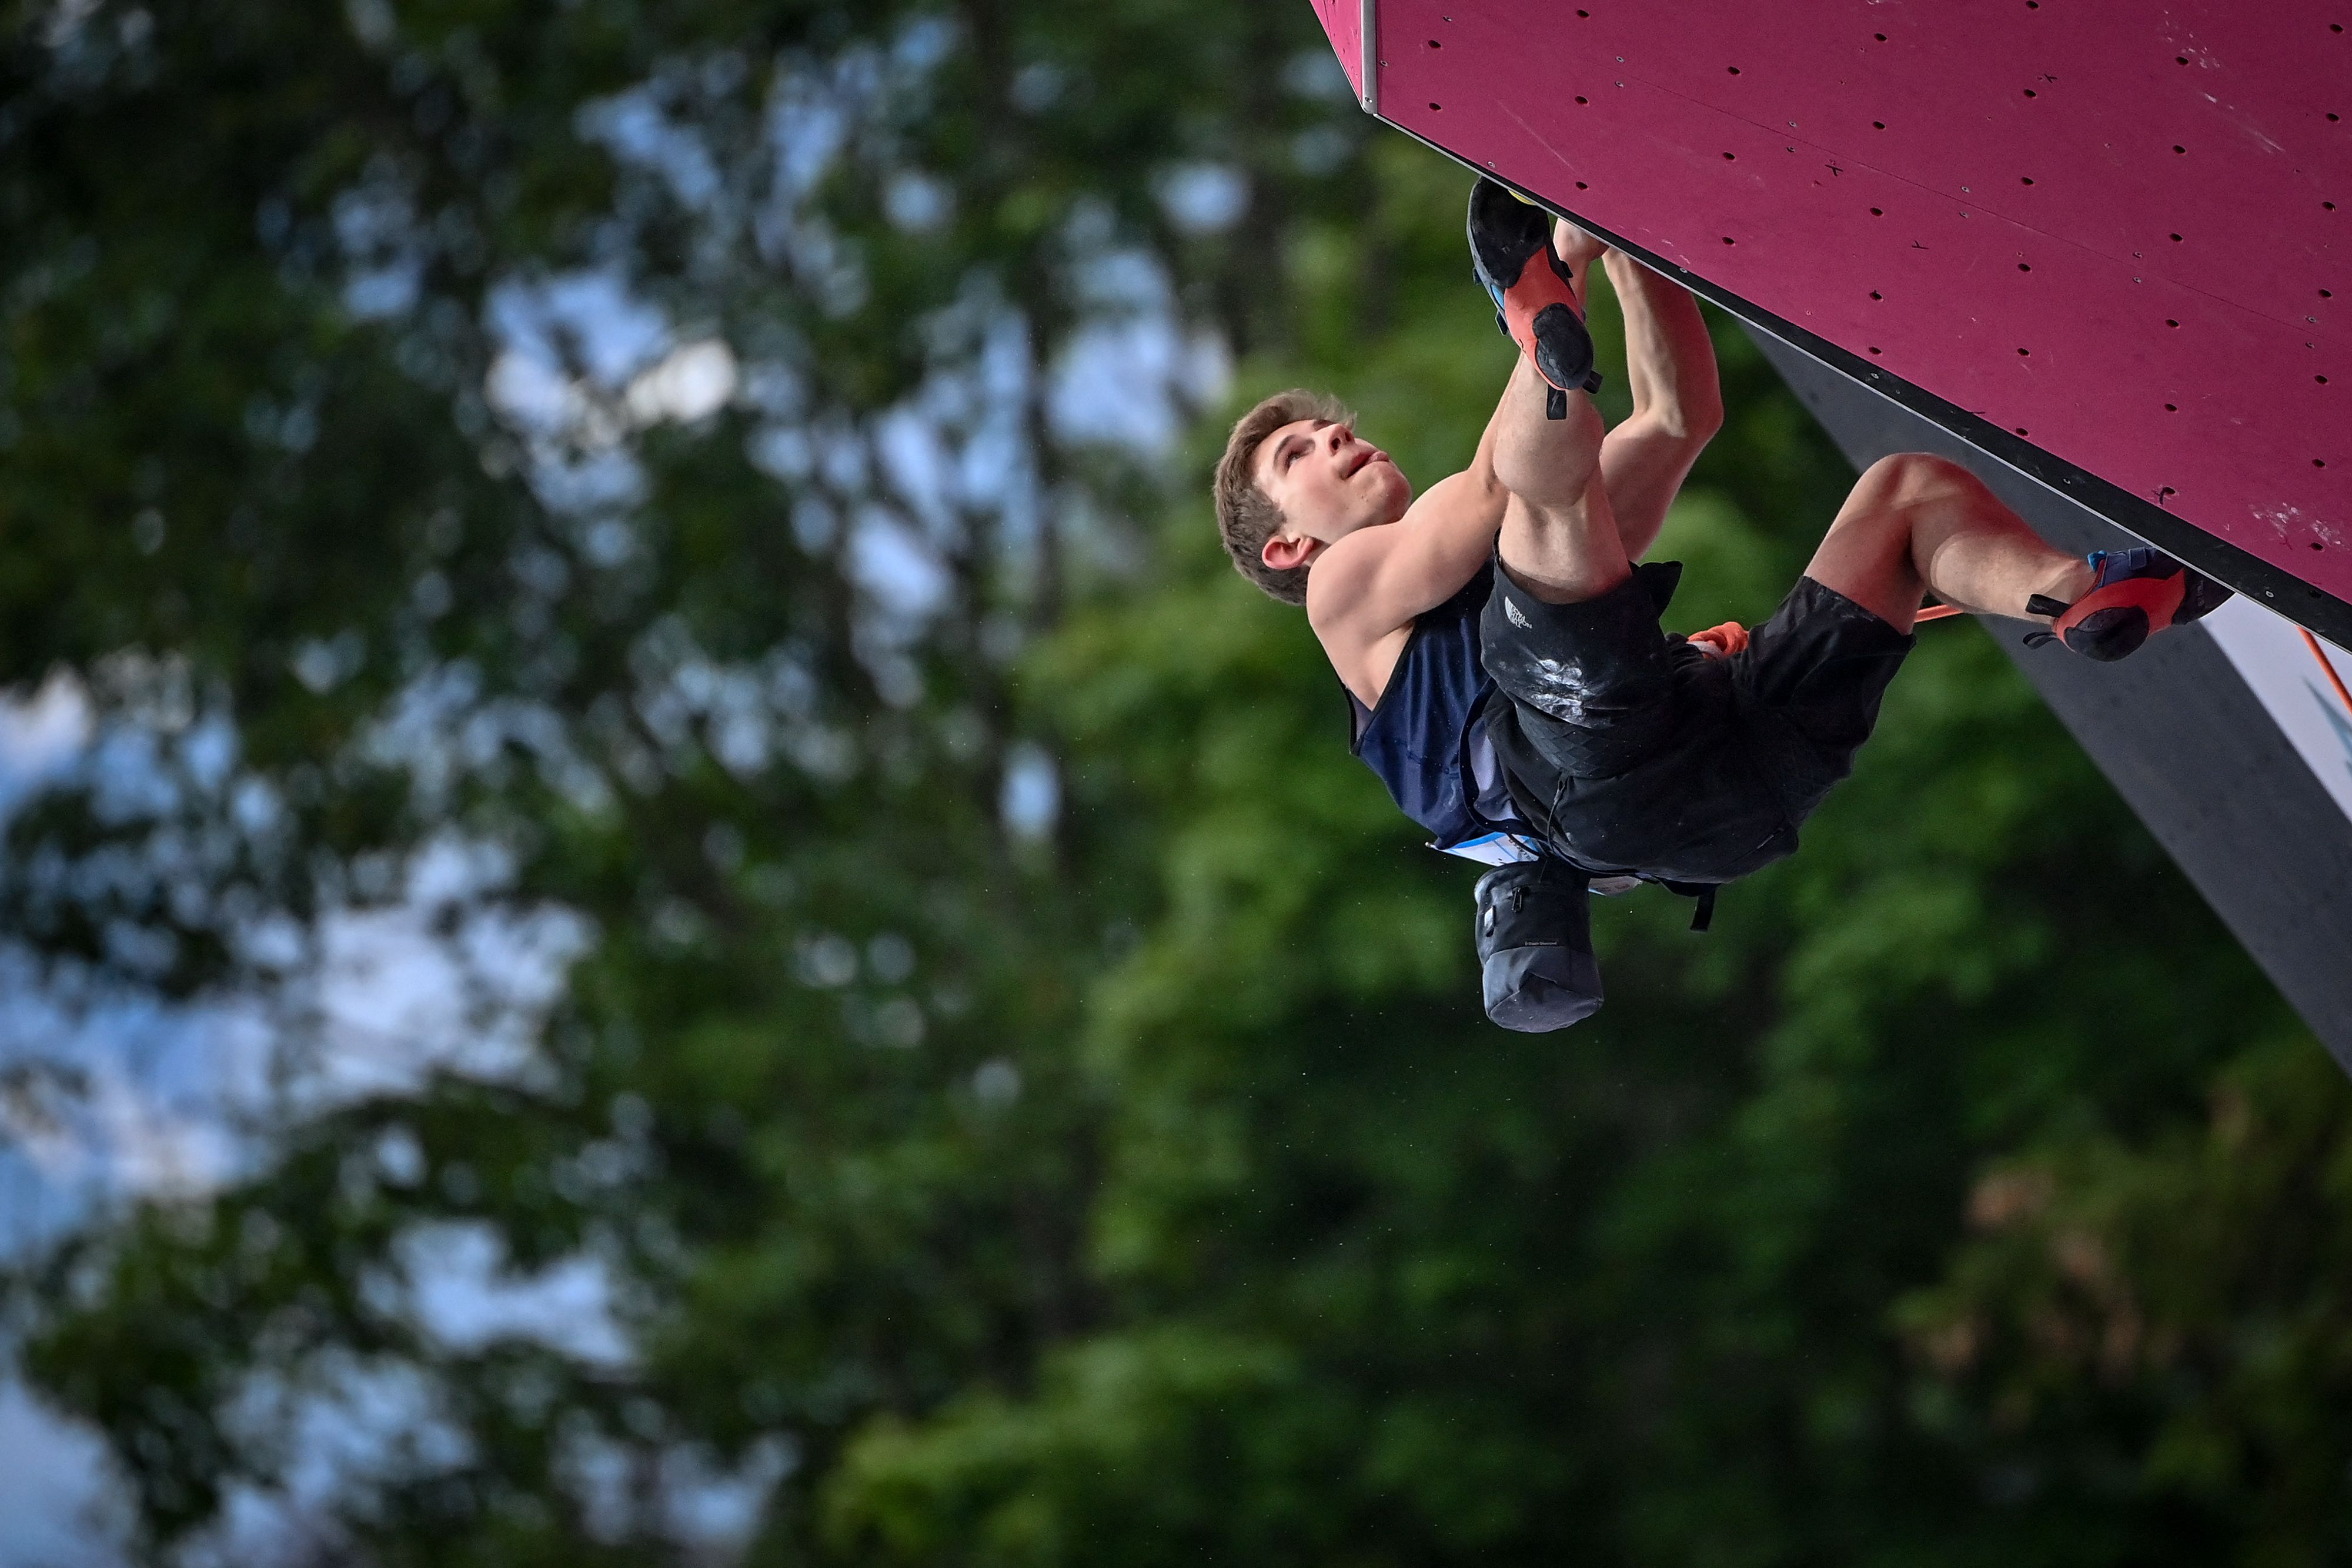 Colin Duffy competes at the Climbing IFSC World Cup in July.